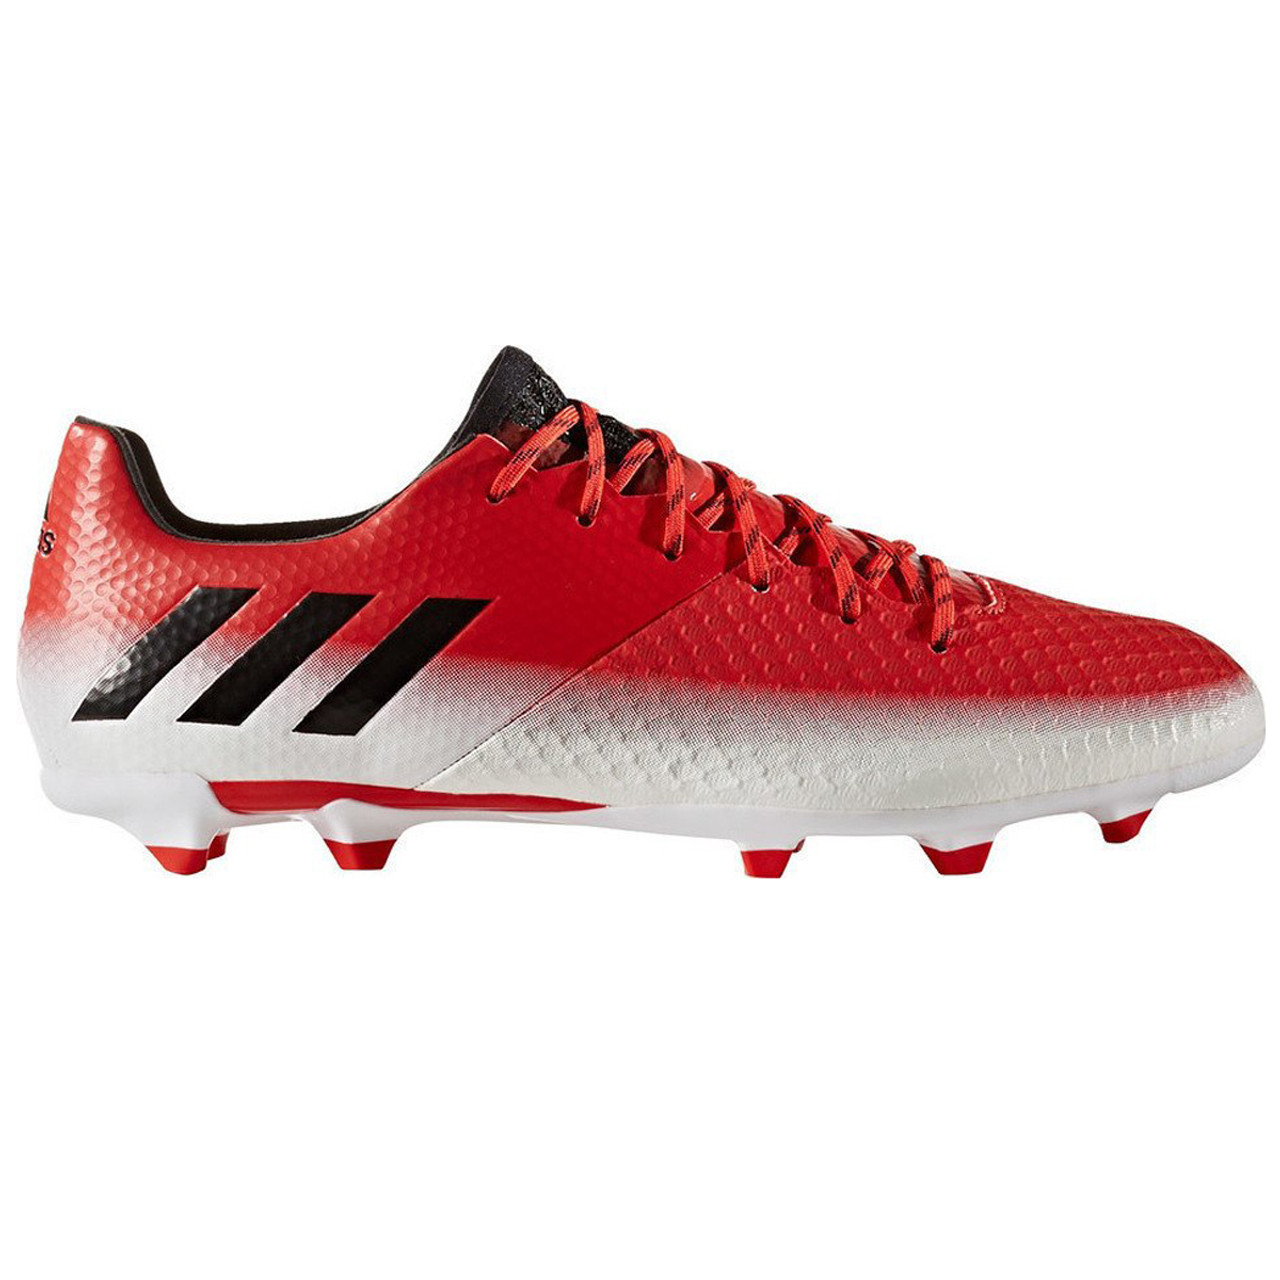 0732b6dd2 Adidas Messi 16.2 FG Men s Soccer Cleats BA9144 - Red